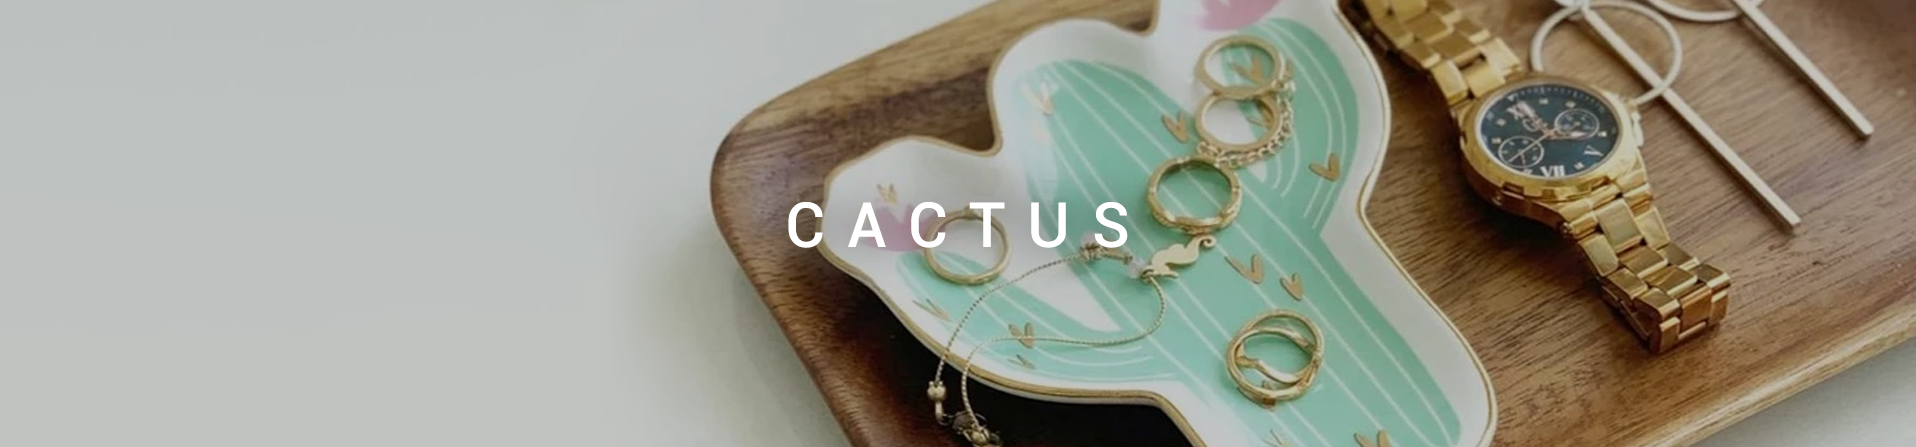 - Cactus Theme Gifts -